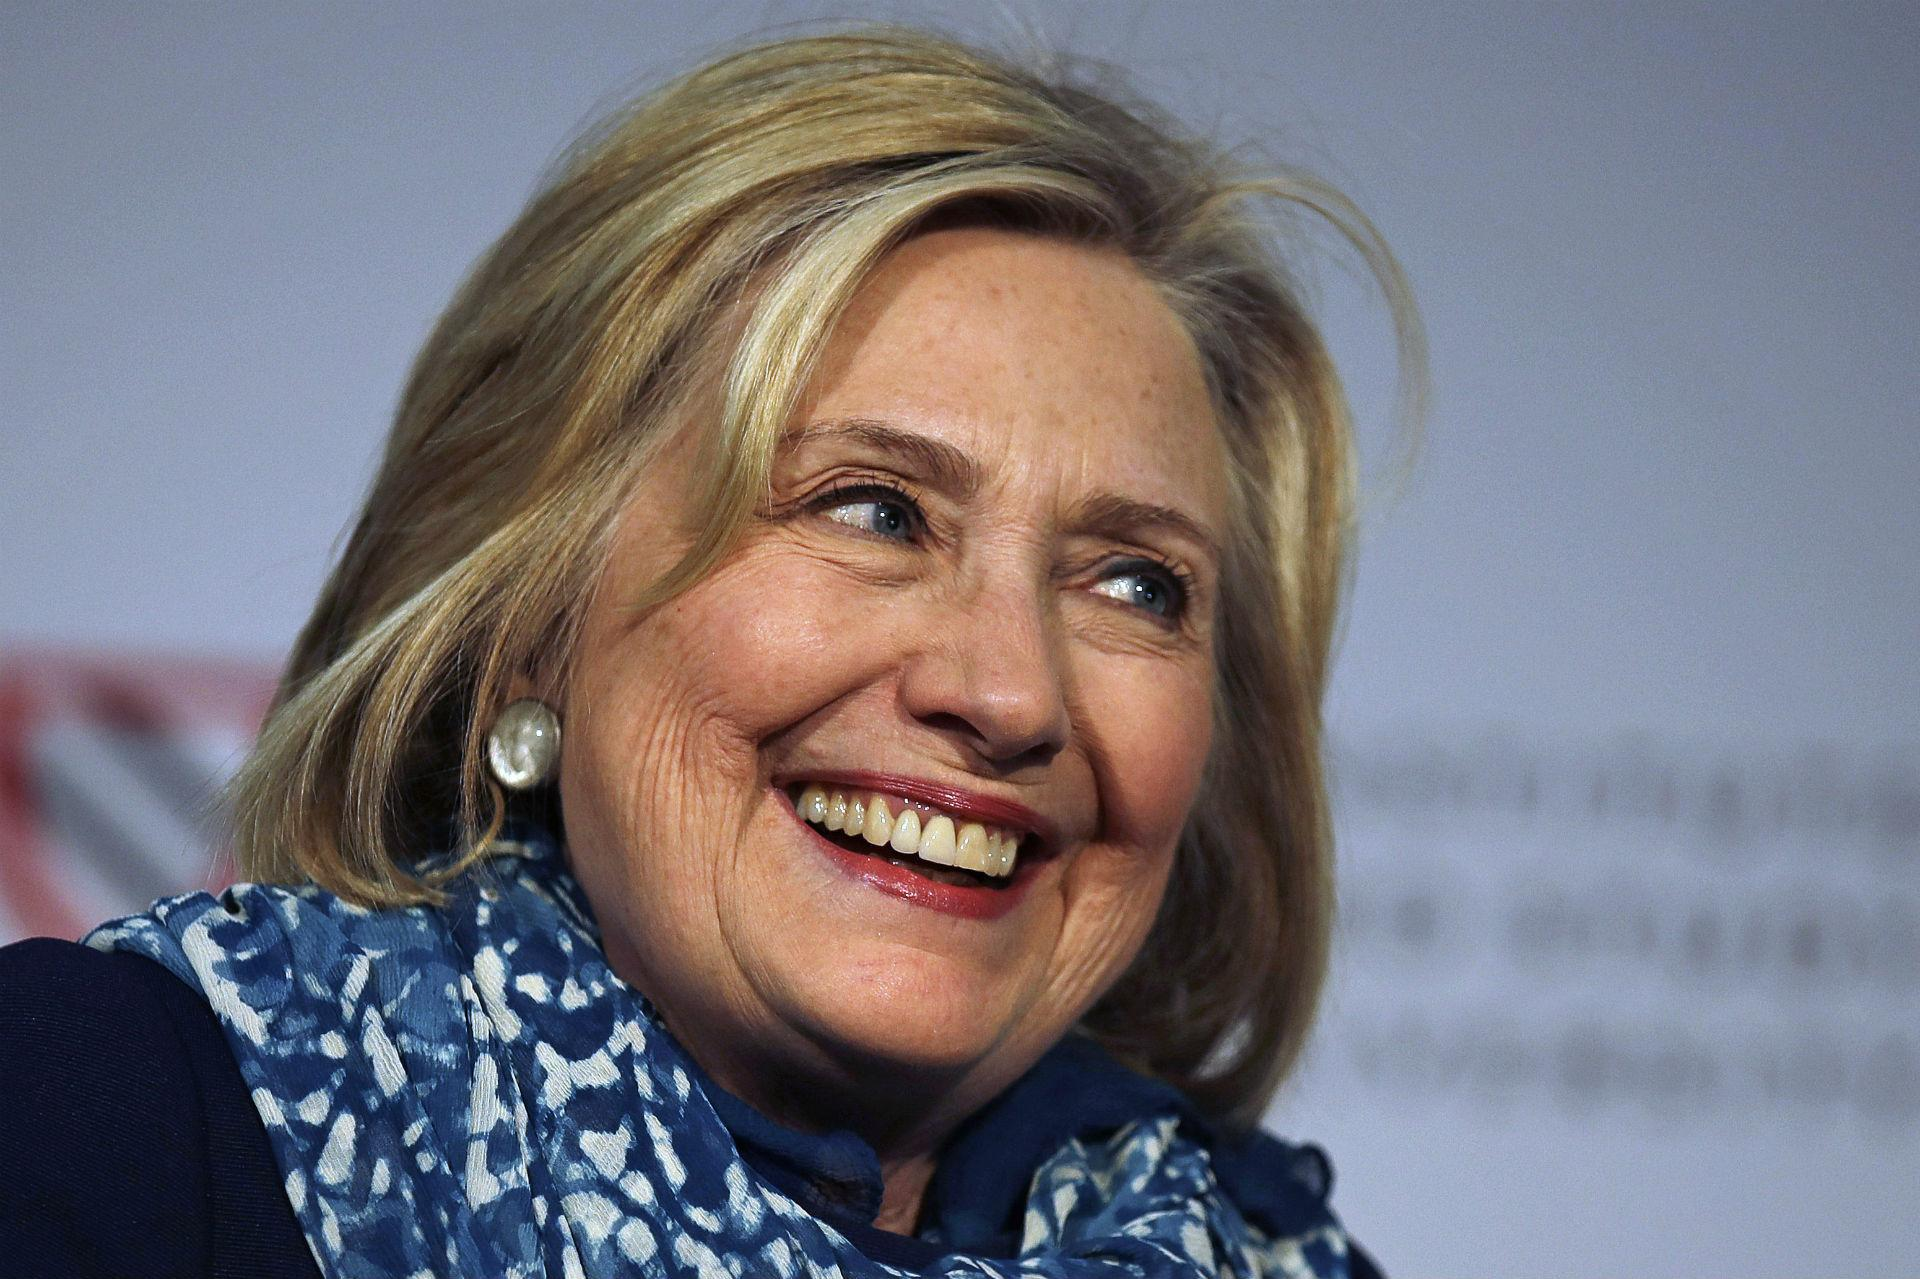 In this May 25, 2018 file photo, Hillary Clinton smiles as she is introduced at Harvard University in Cambridge, Massachusetts. (AP Photo / Charles Krupa)